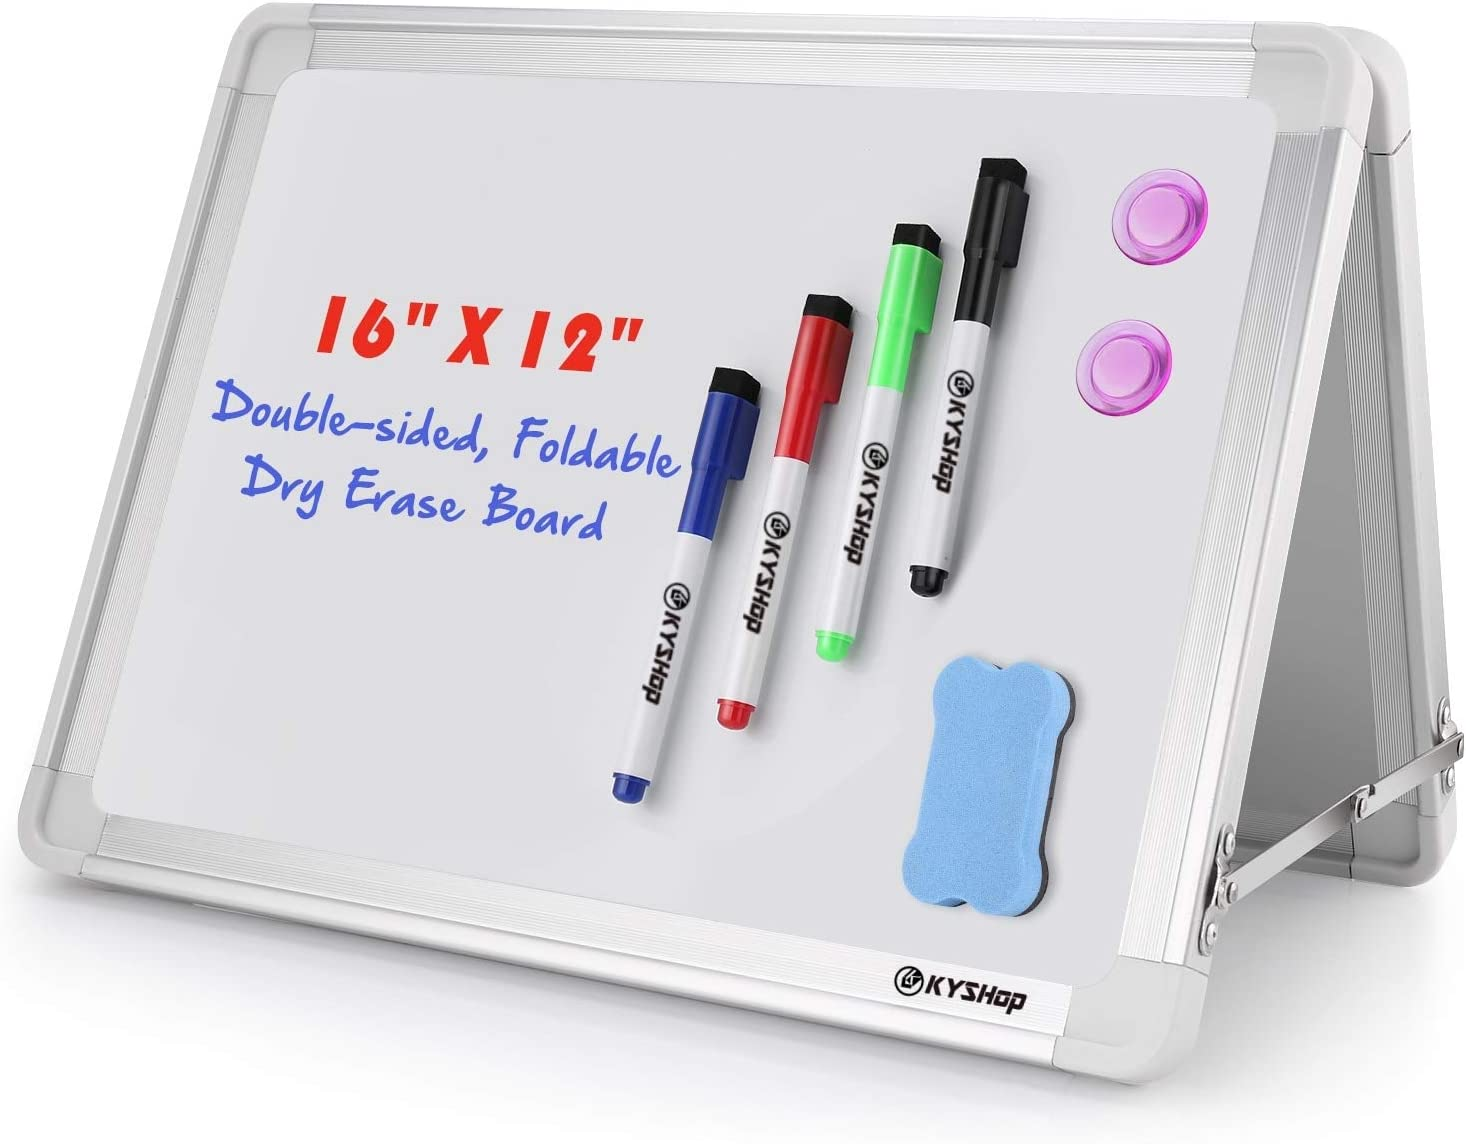 "Small Dry Erase White Board, Folded Double Sided Magnetic Tabletop Easel Mini Whiteboard for Kids, Office, 16"" X 12"", Includes 1 Magnetic Eraser, 4 Markers, 2 Magnets …"